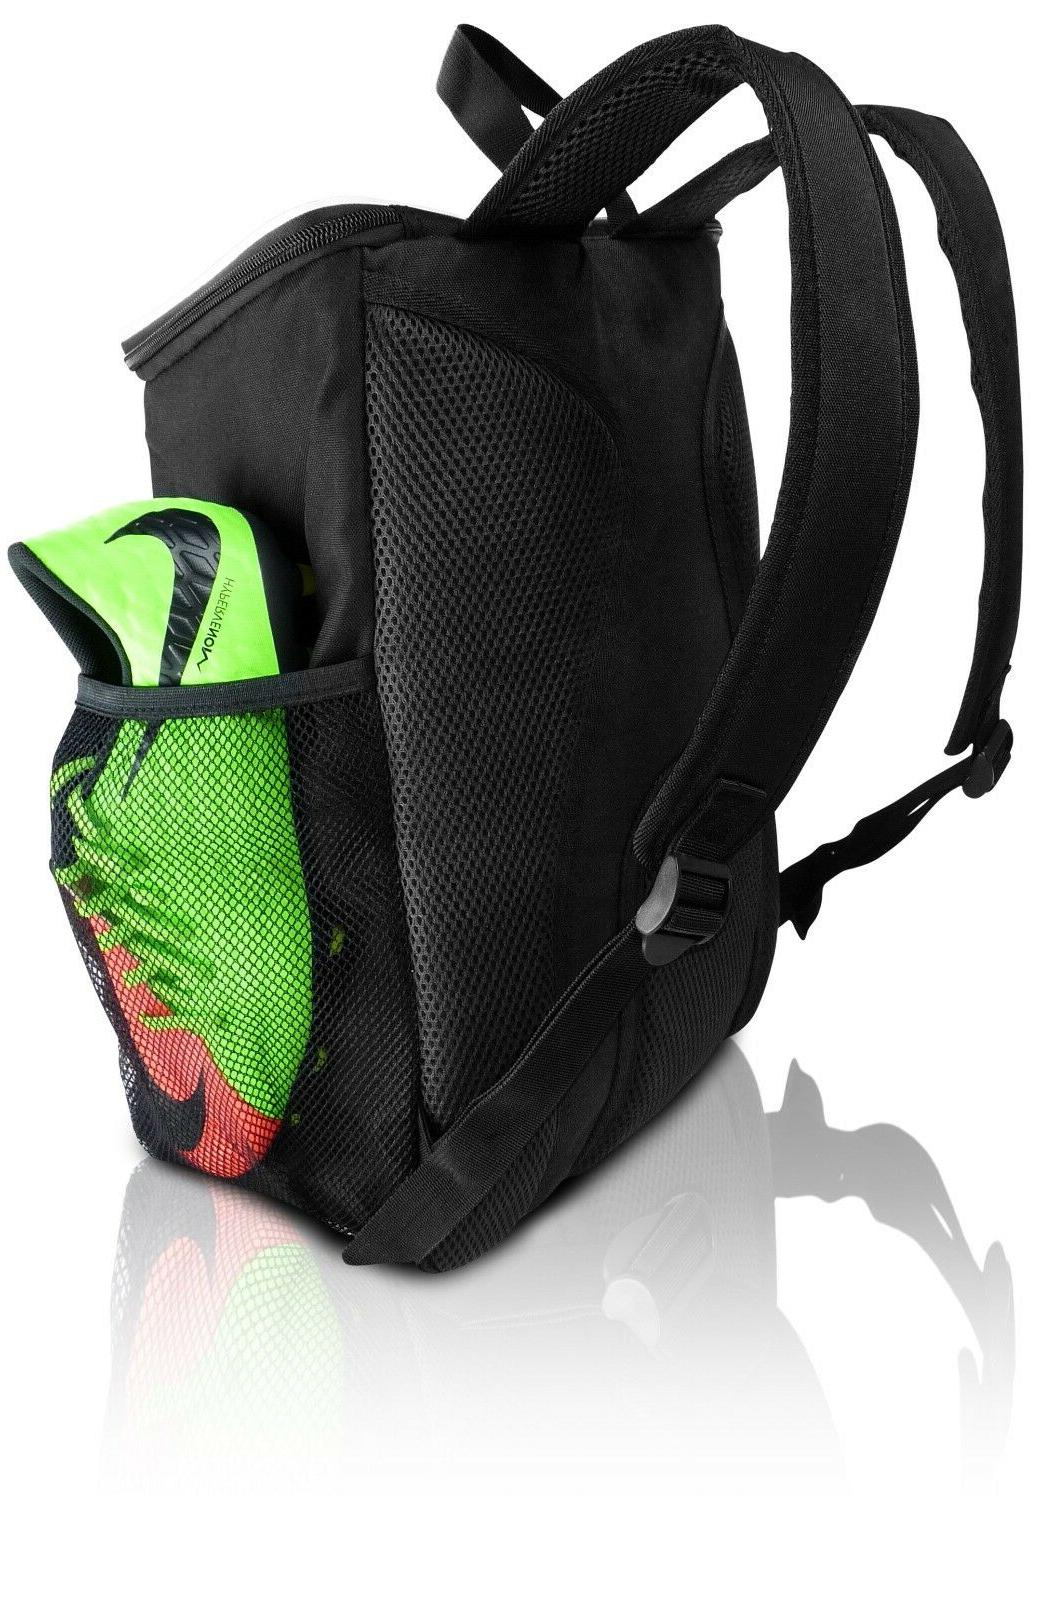 Soccer Backpack with Holder Compartment - Kids Soccer for Boys &